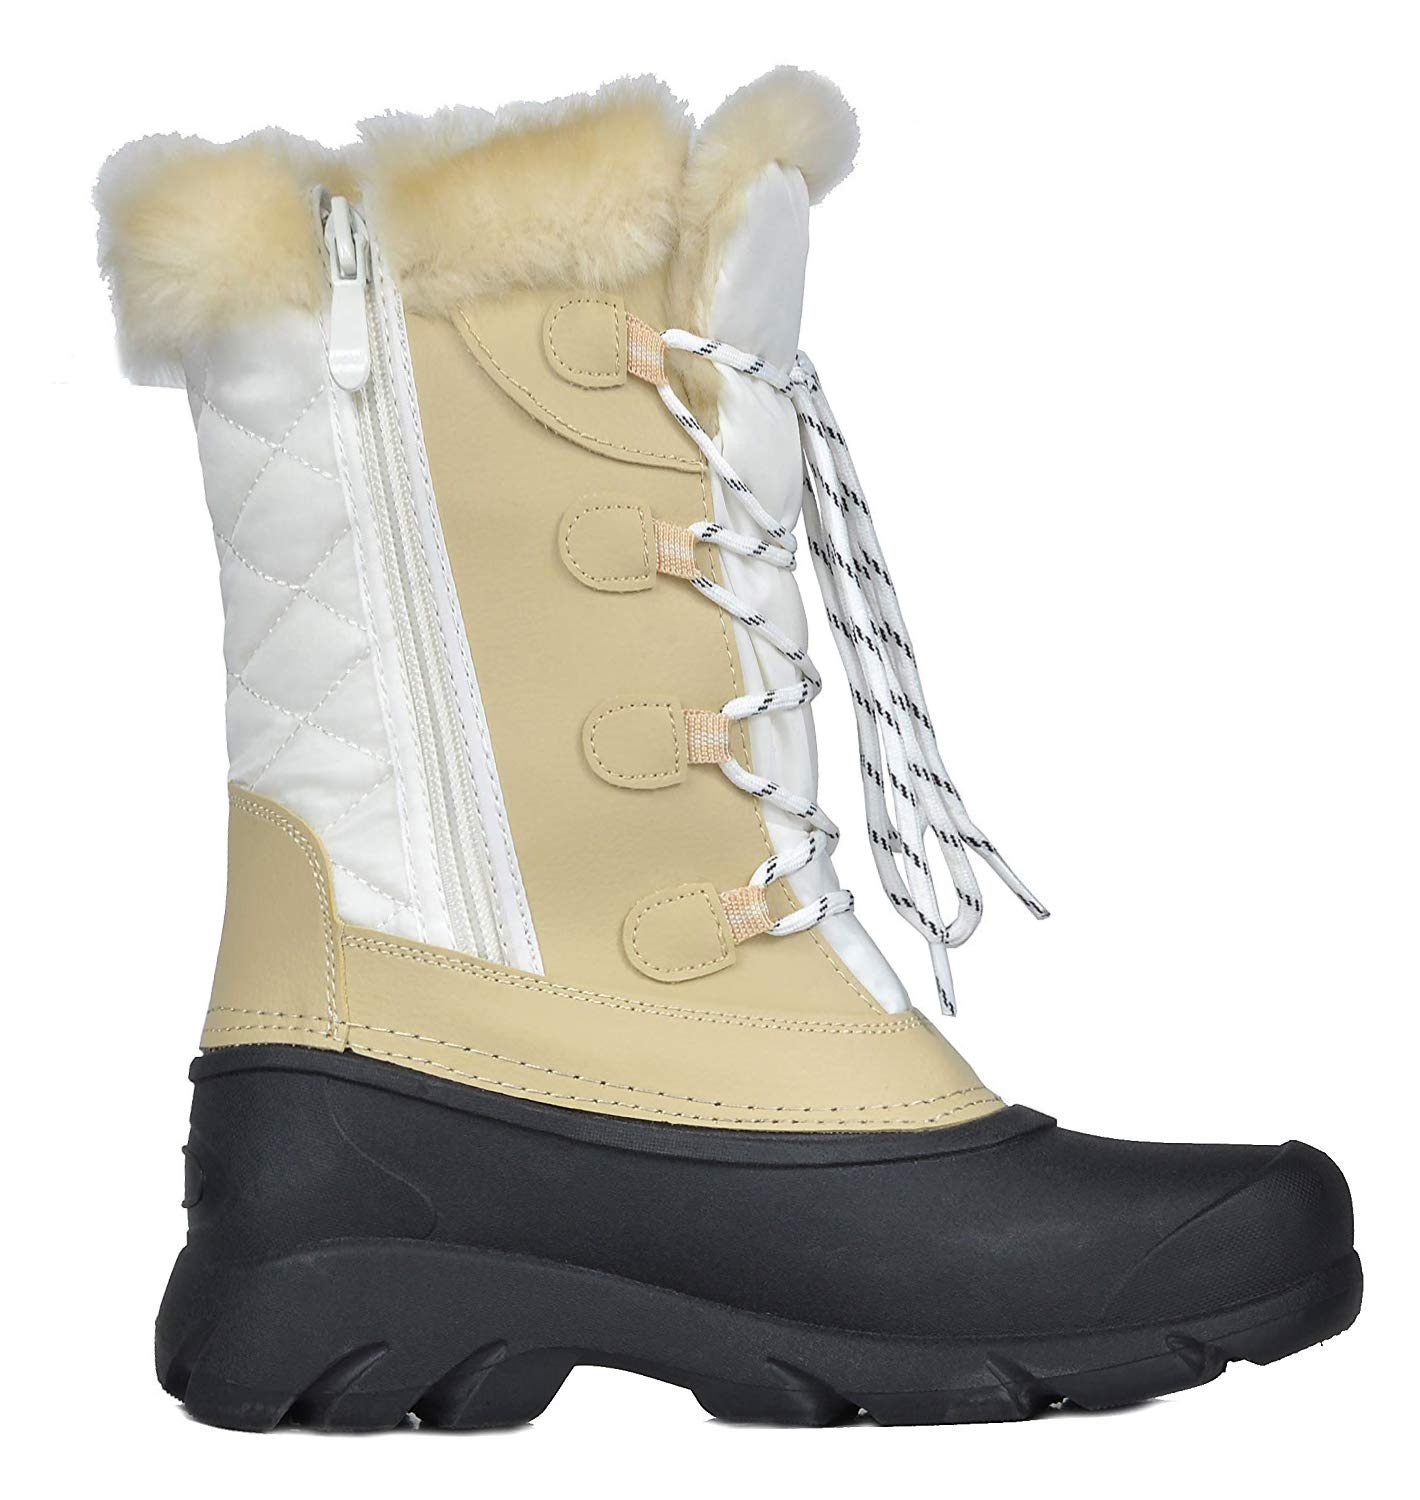 45f62d134e6 Women LINX DREAM PAIRS Women s Faux Fur Lined Mid Calf Winter Snow Boots